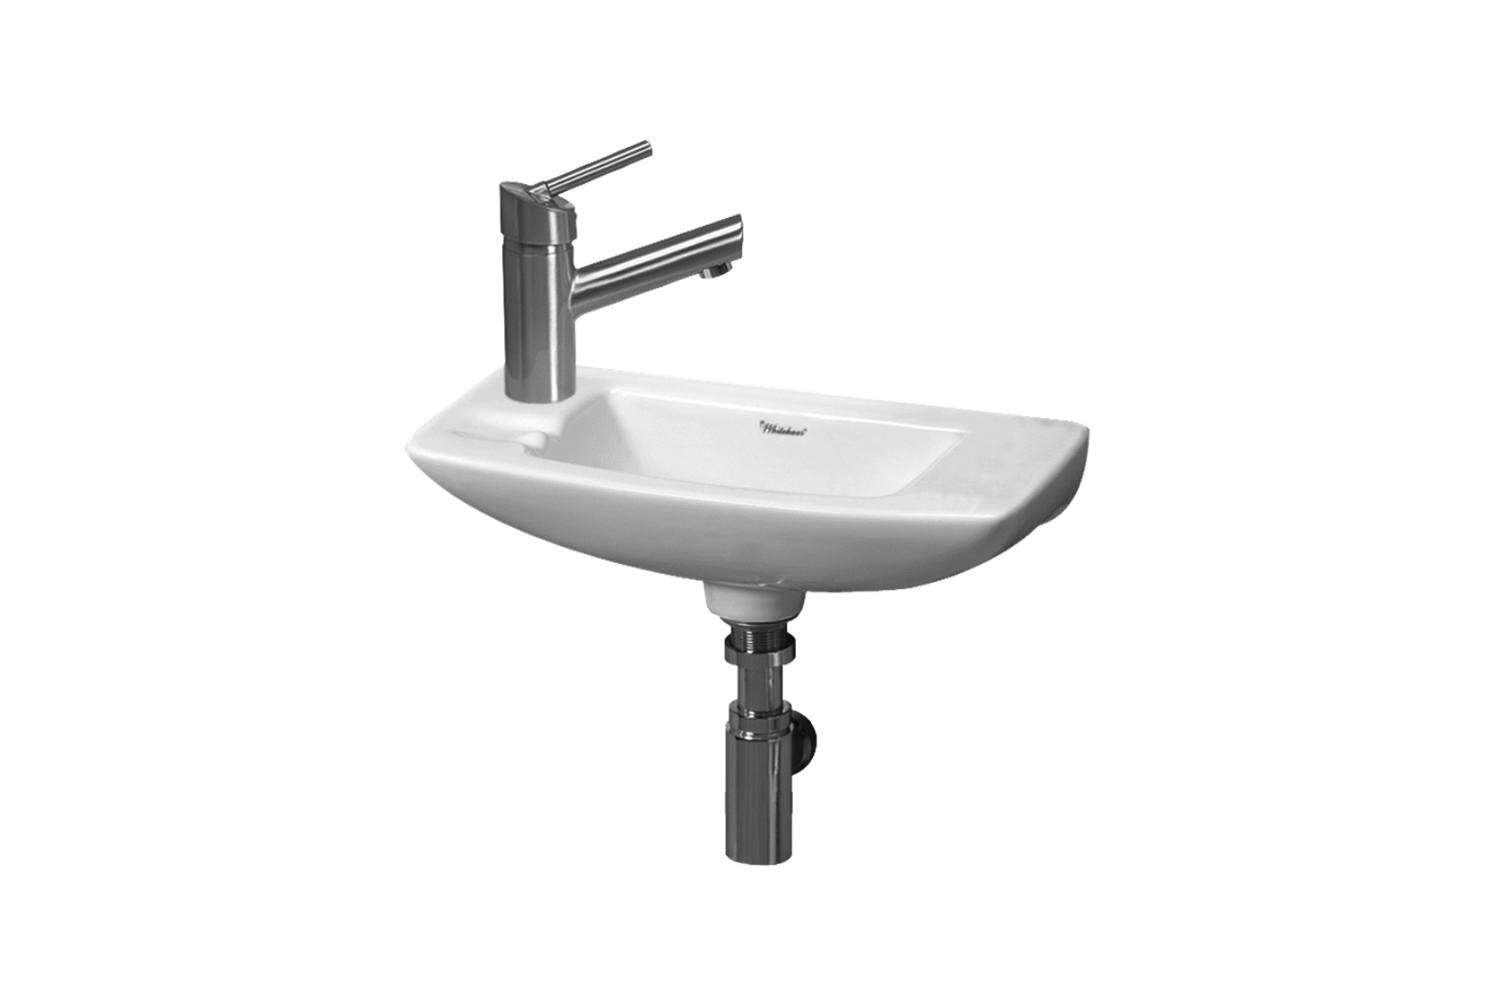 The Whitehaus Isabella Wall-Mounted Bathroom Sink measures .5 inches for $7. at Build.com.